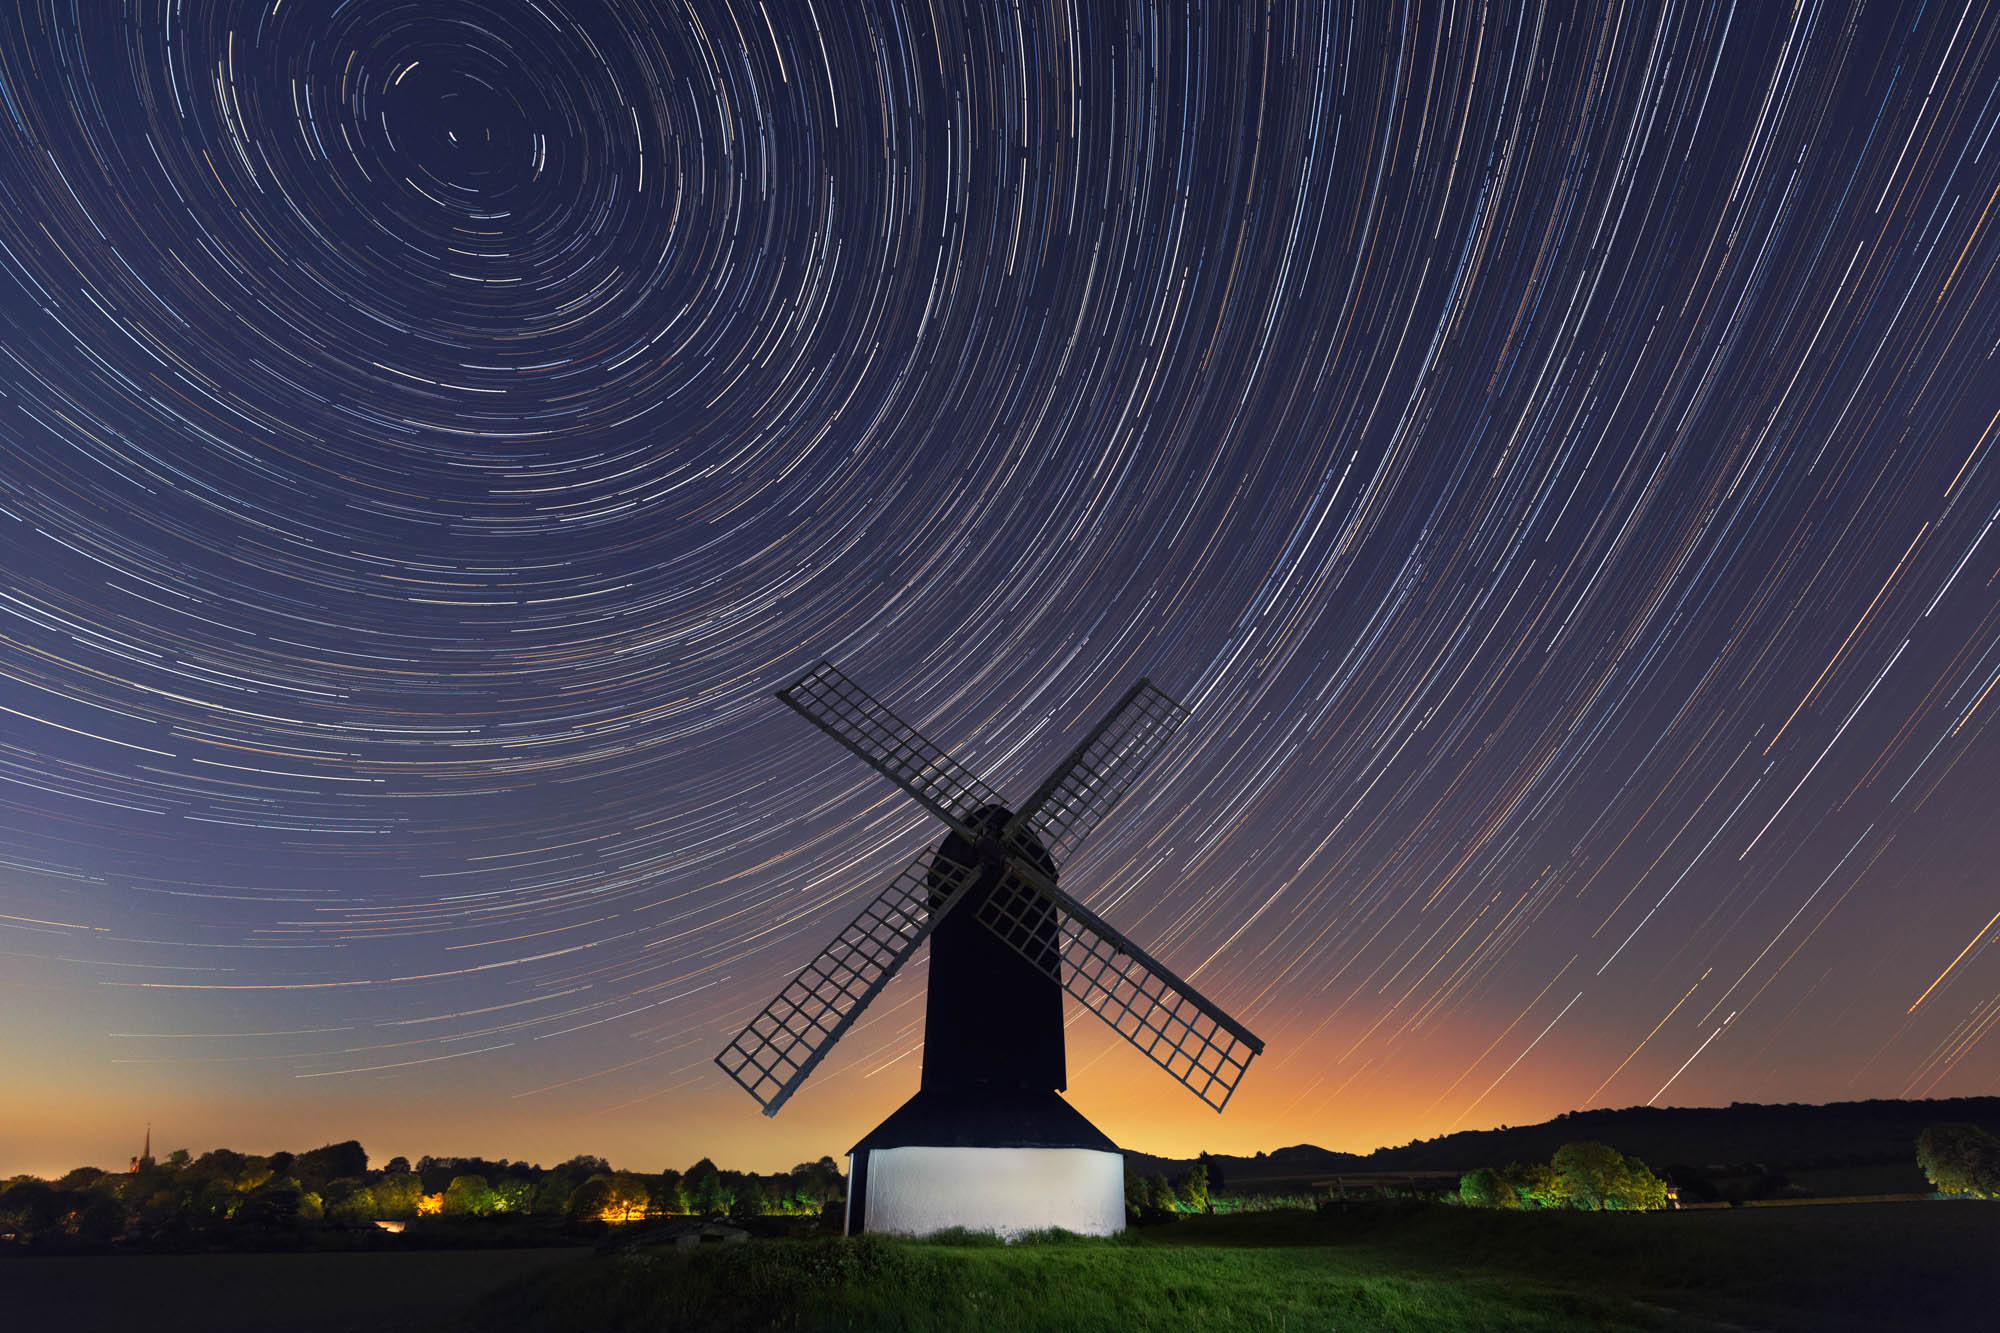 long exposure astrophotography of star trails around an old windmill in England UK